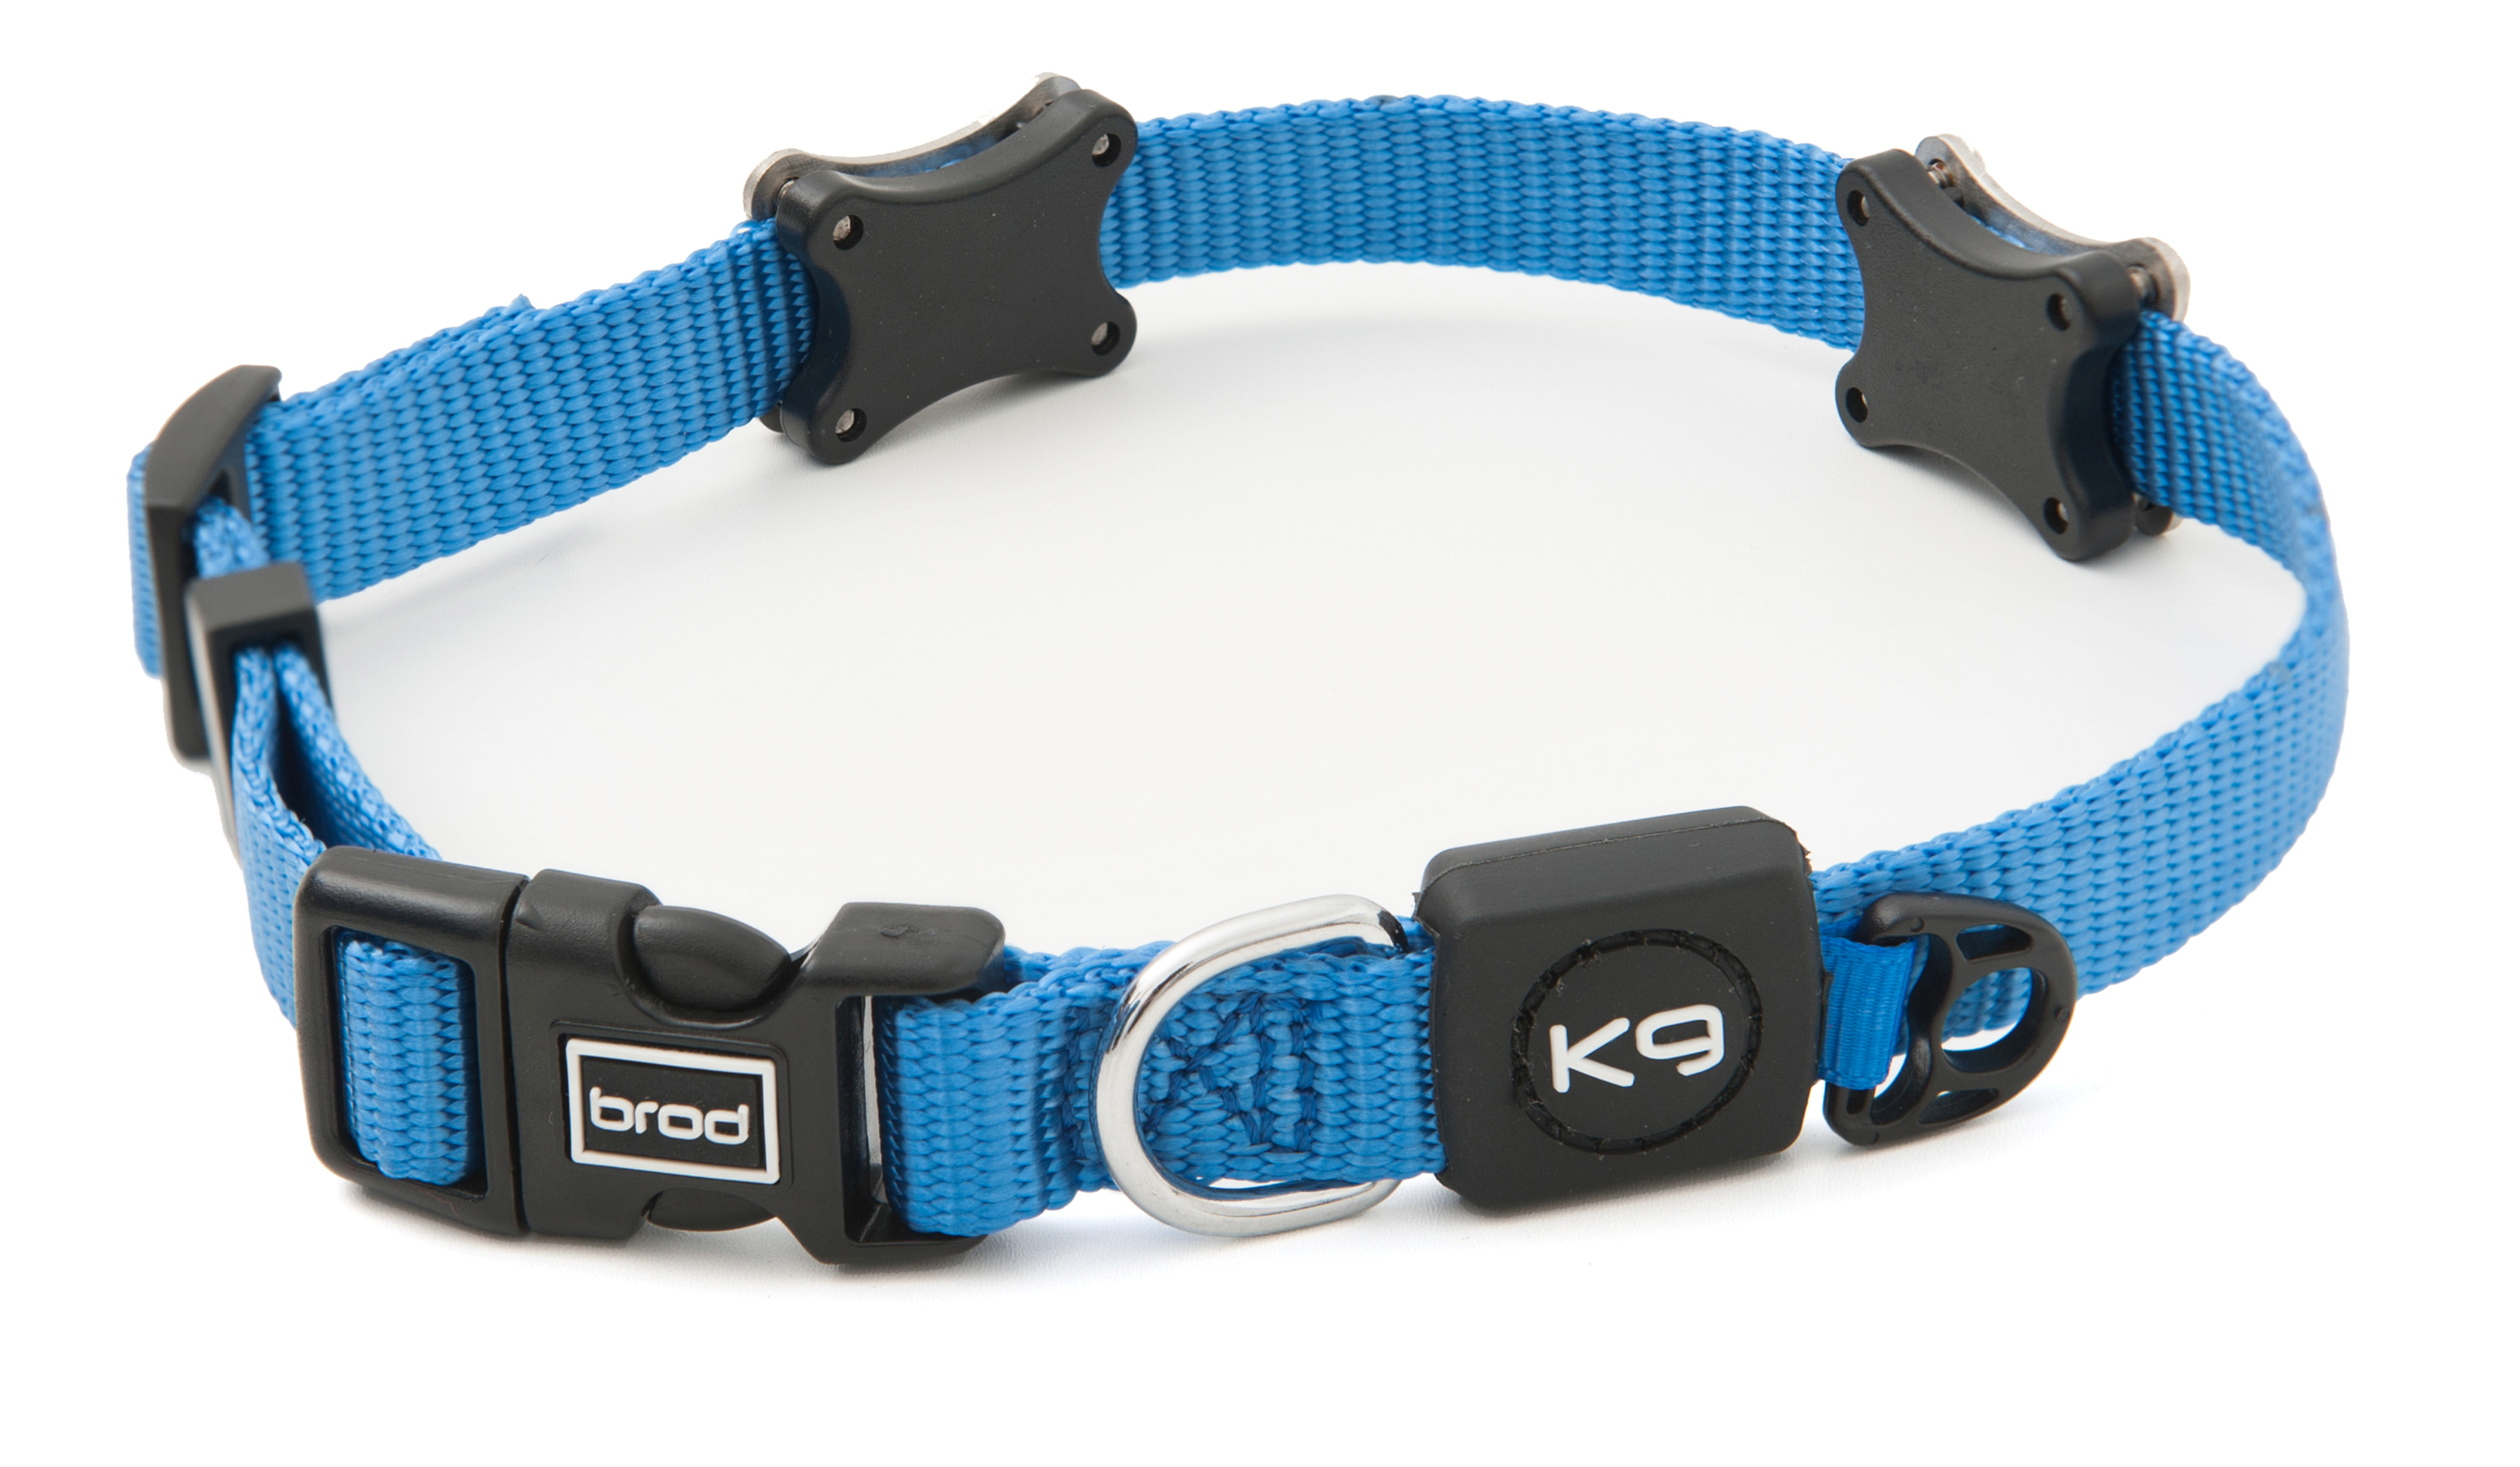 BrodPod magnetic therapy collar